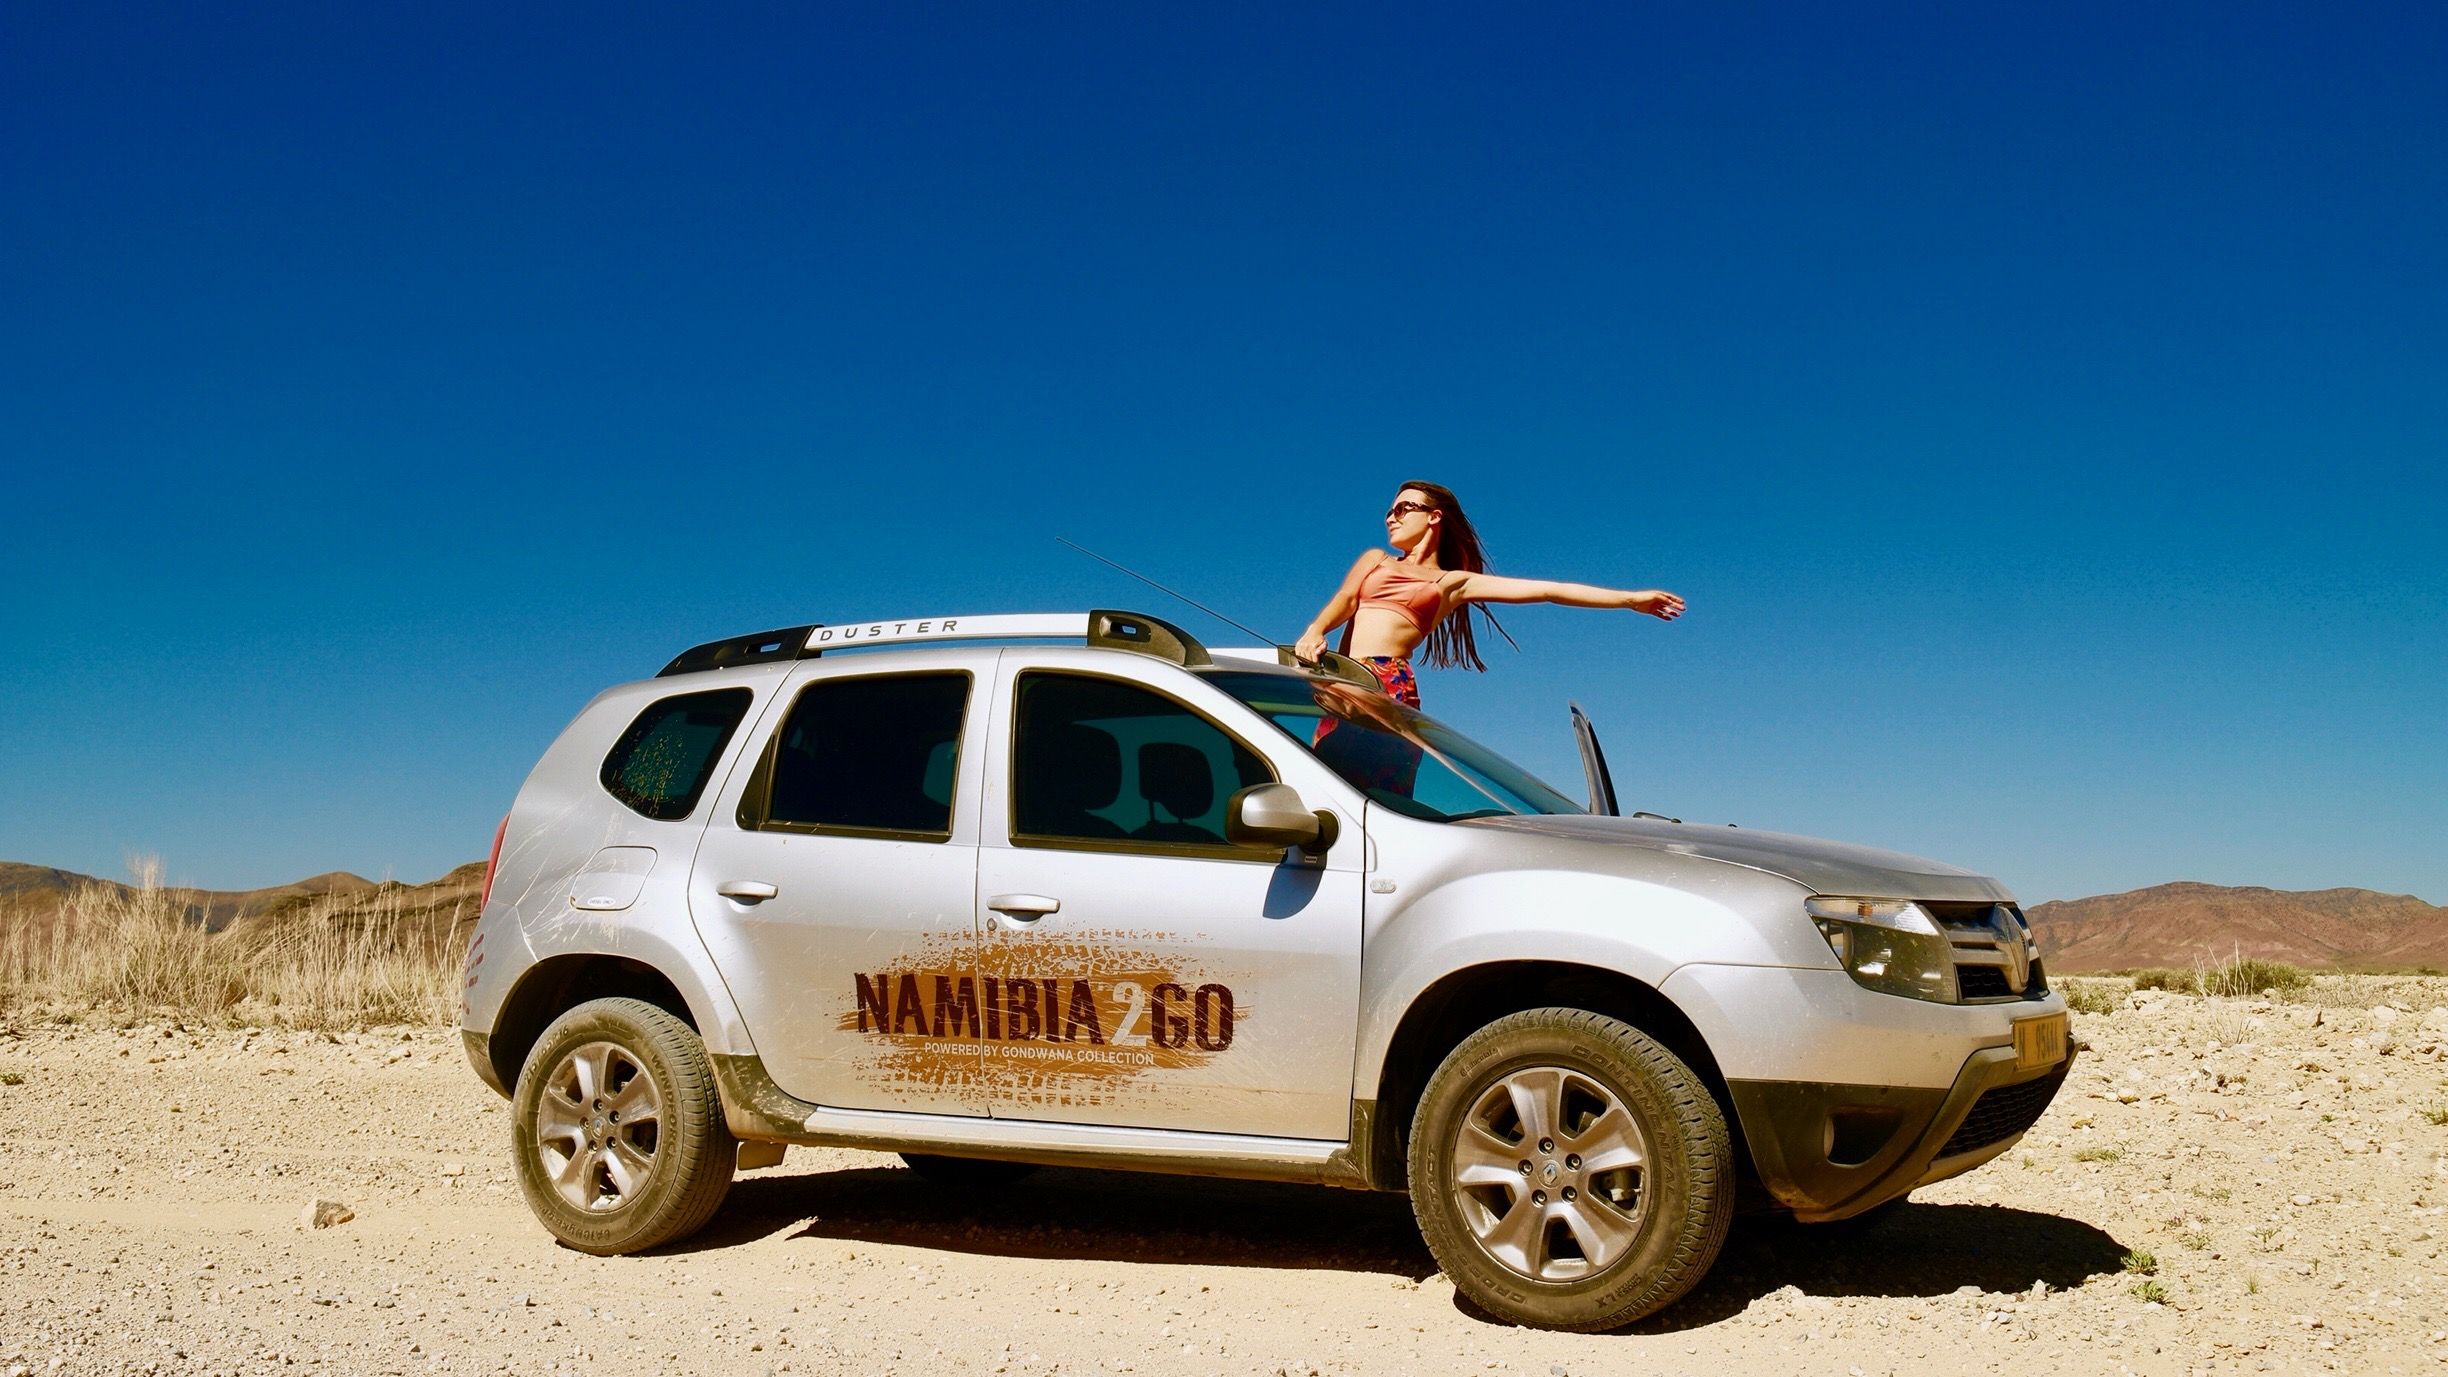 namibia-roadtrip-namibia2go-africa-lustforthesublime